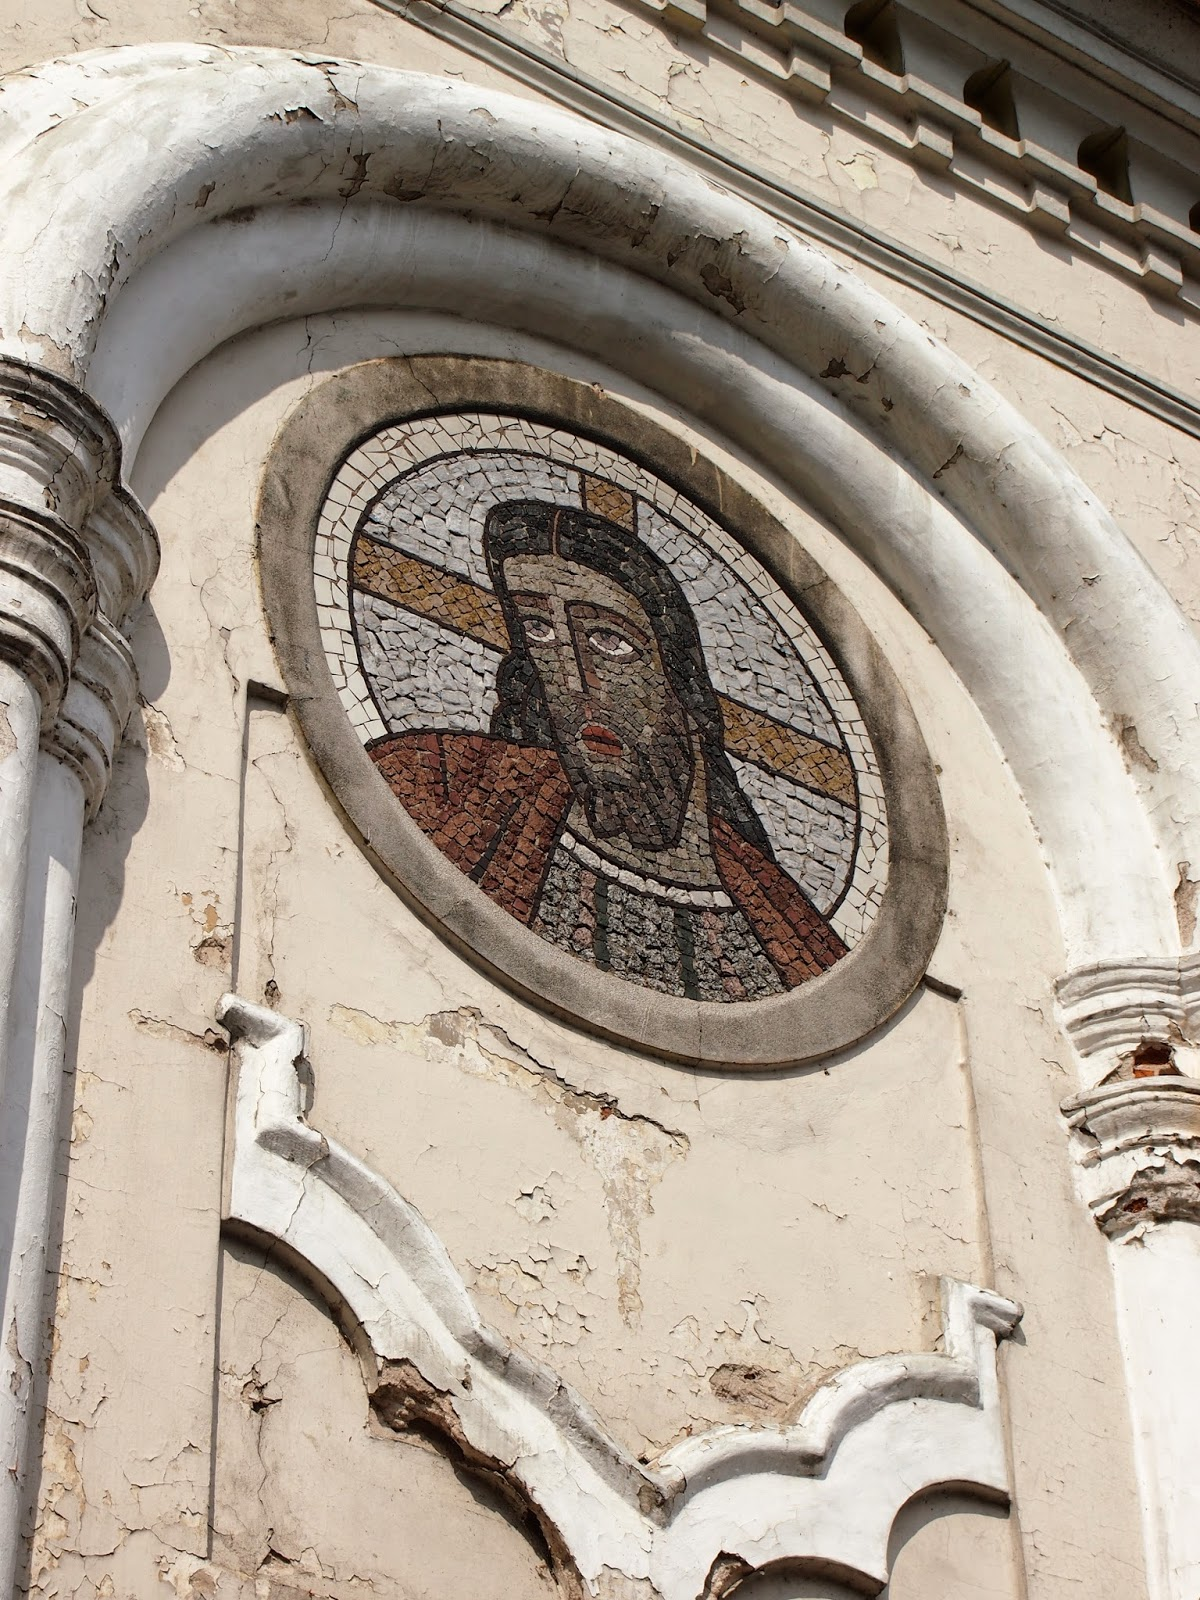 The face of Jesus Christ on a church in Old Town Kaunas